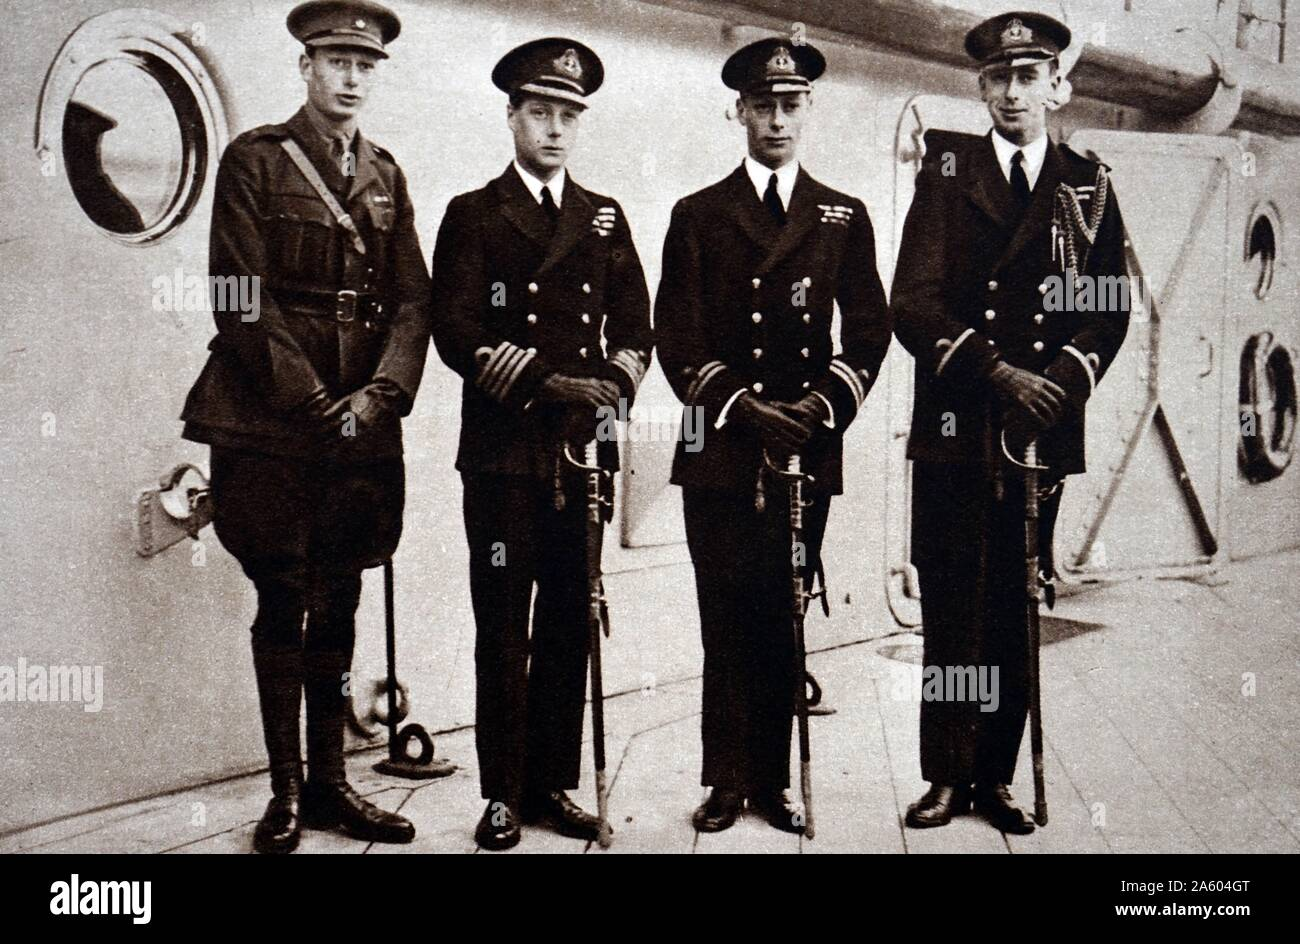 Photograph of Edward, Prince of Wales (1894-1972) leaving to visit Australasia. Also pictured is Prince Albert Frederick Arthur George (1895-1952) and Prince Henry, Duke of Gloucester (1900-1974) to bid him farewell. Dated 20th Century Stock Photo